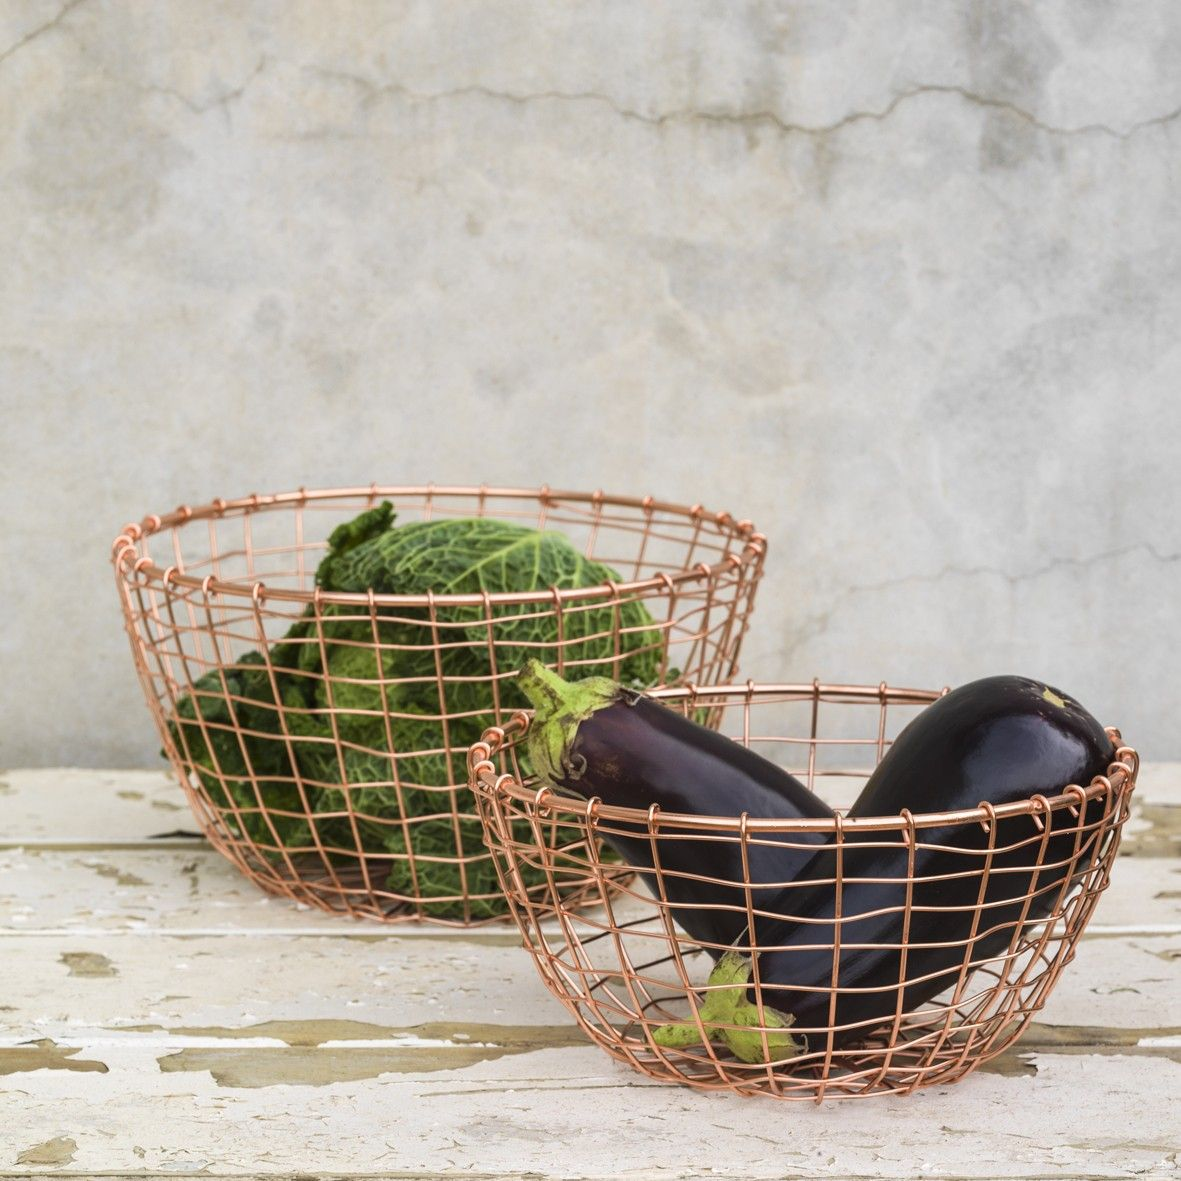 Elegant Overview These Traditional Copper Baskets Are Created By Hand By A Team Of  Artisans Using Skills Passed Down Through Generations. These Versatile  Baskets ... Design